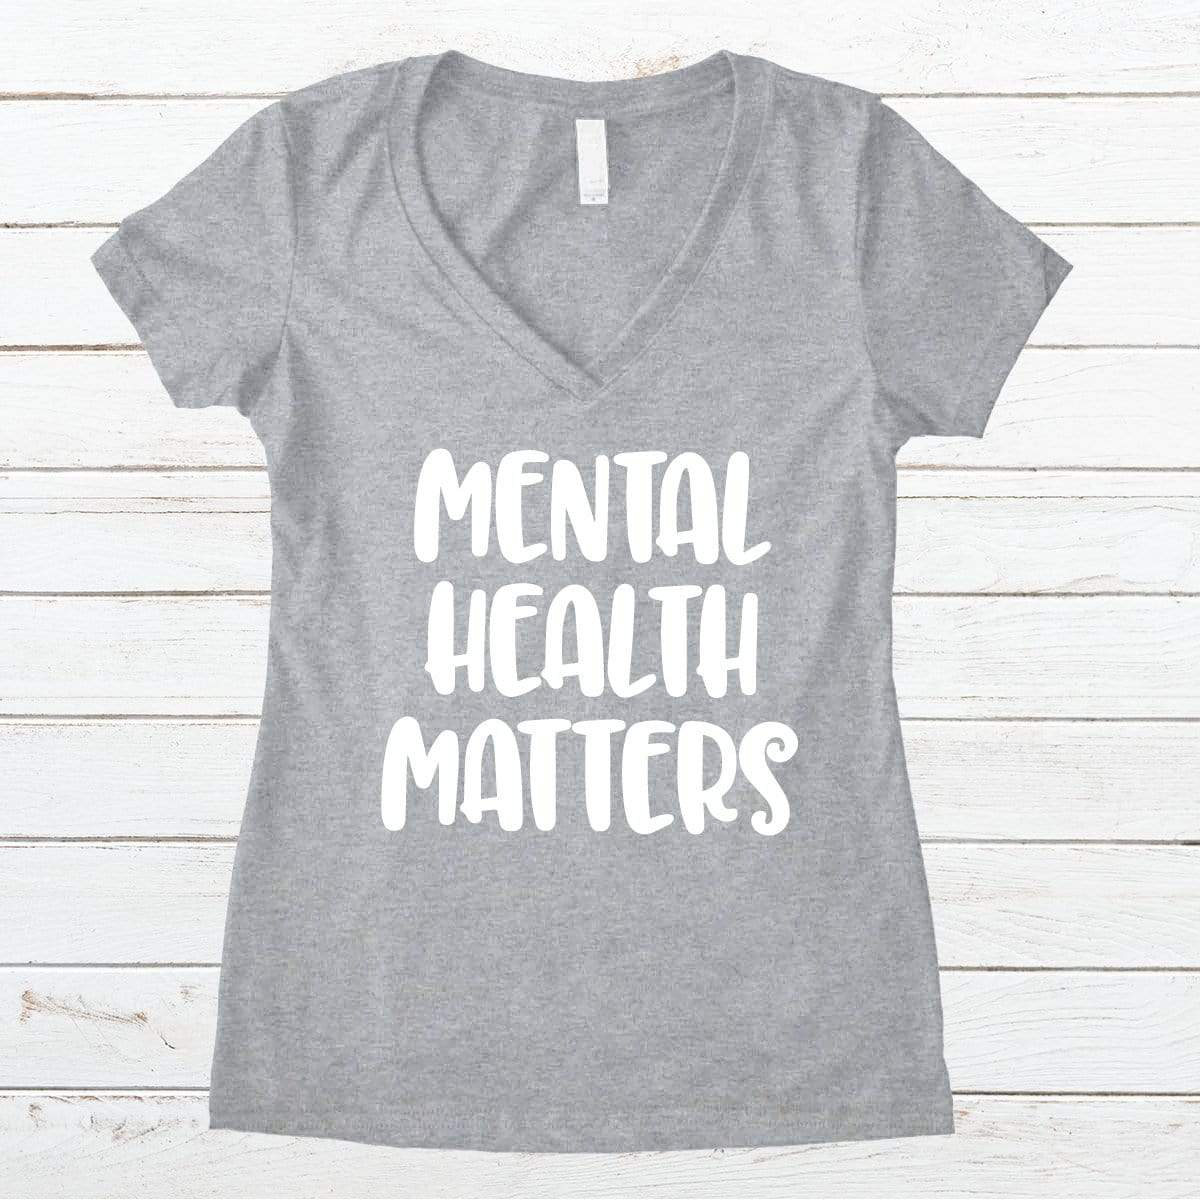 Mental Health Matters V-Necks And Tank Tops